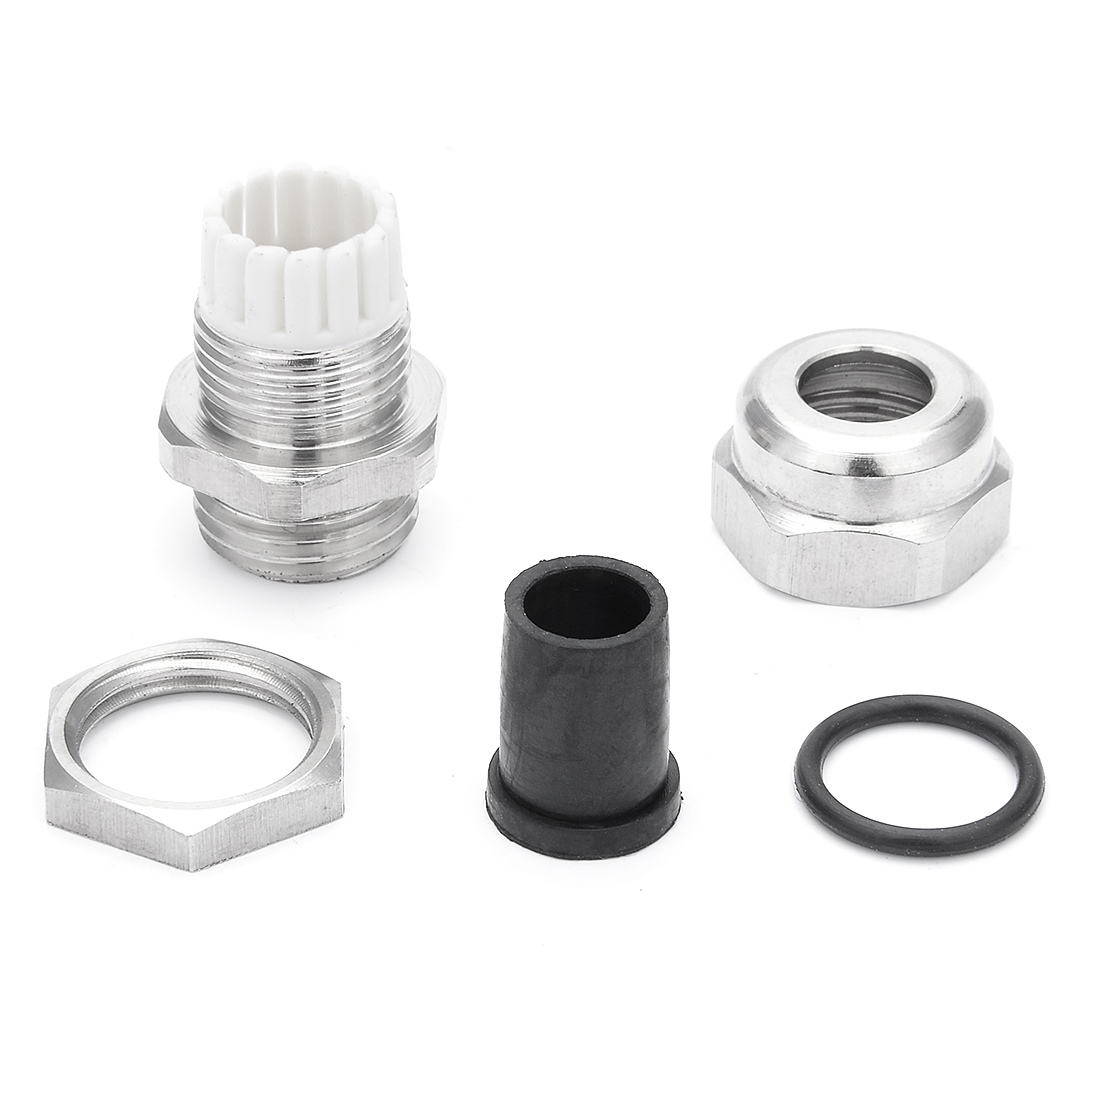 5PCS M16*1.5 Metal Waterproof Connector Fastener Locknut Stuffing Cable Gland